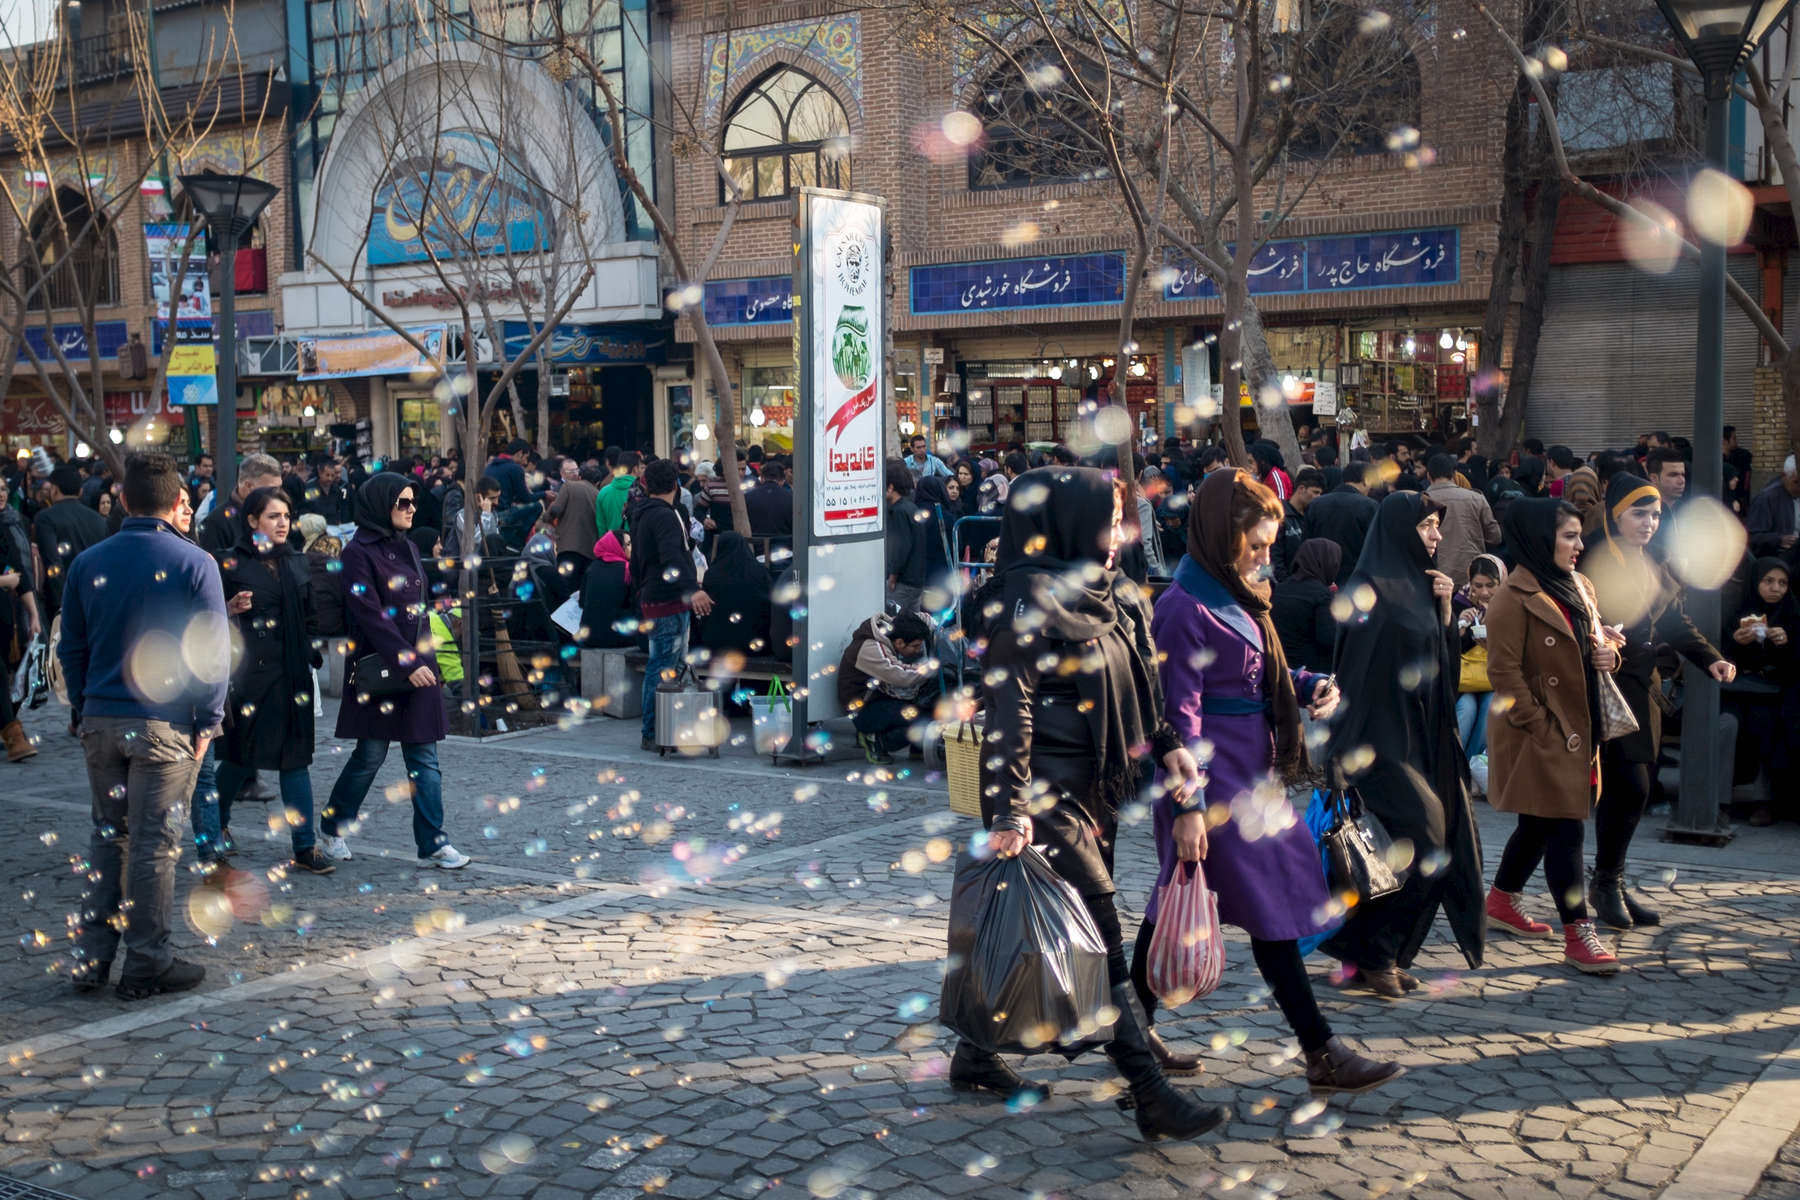 Shoppers outside the Grand Bazar in Tehran.